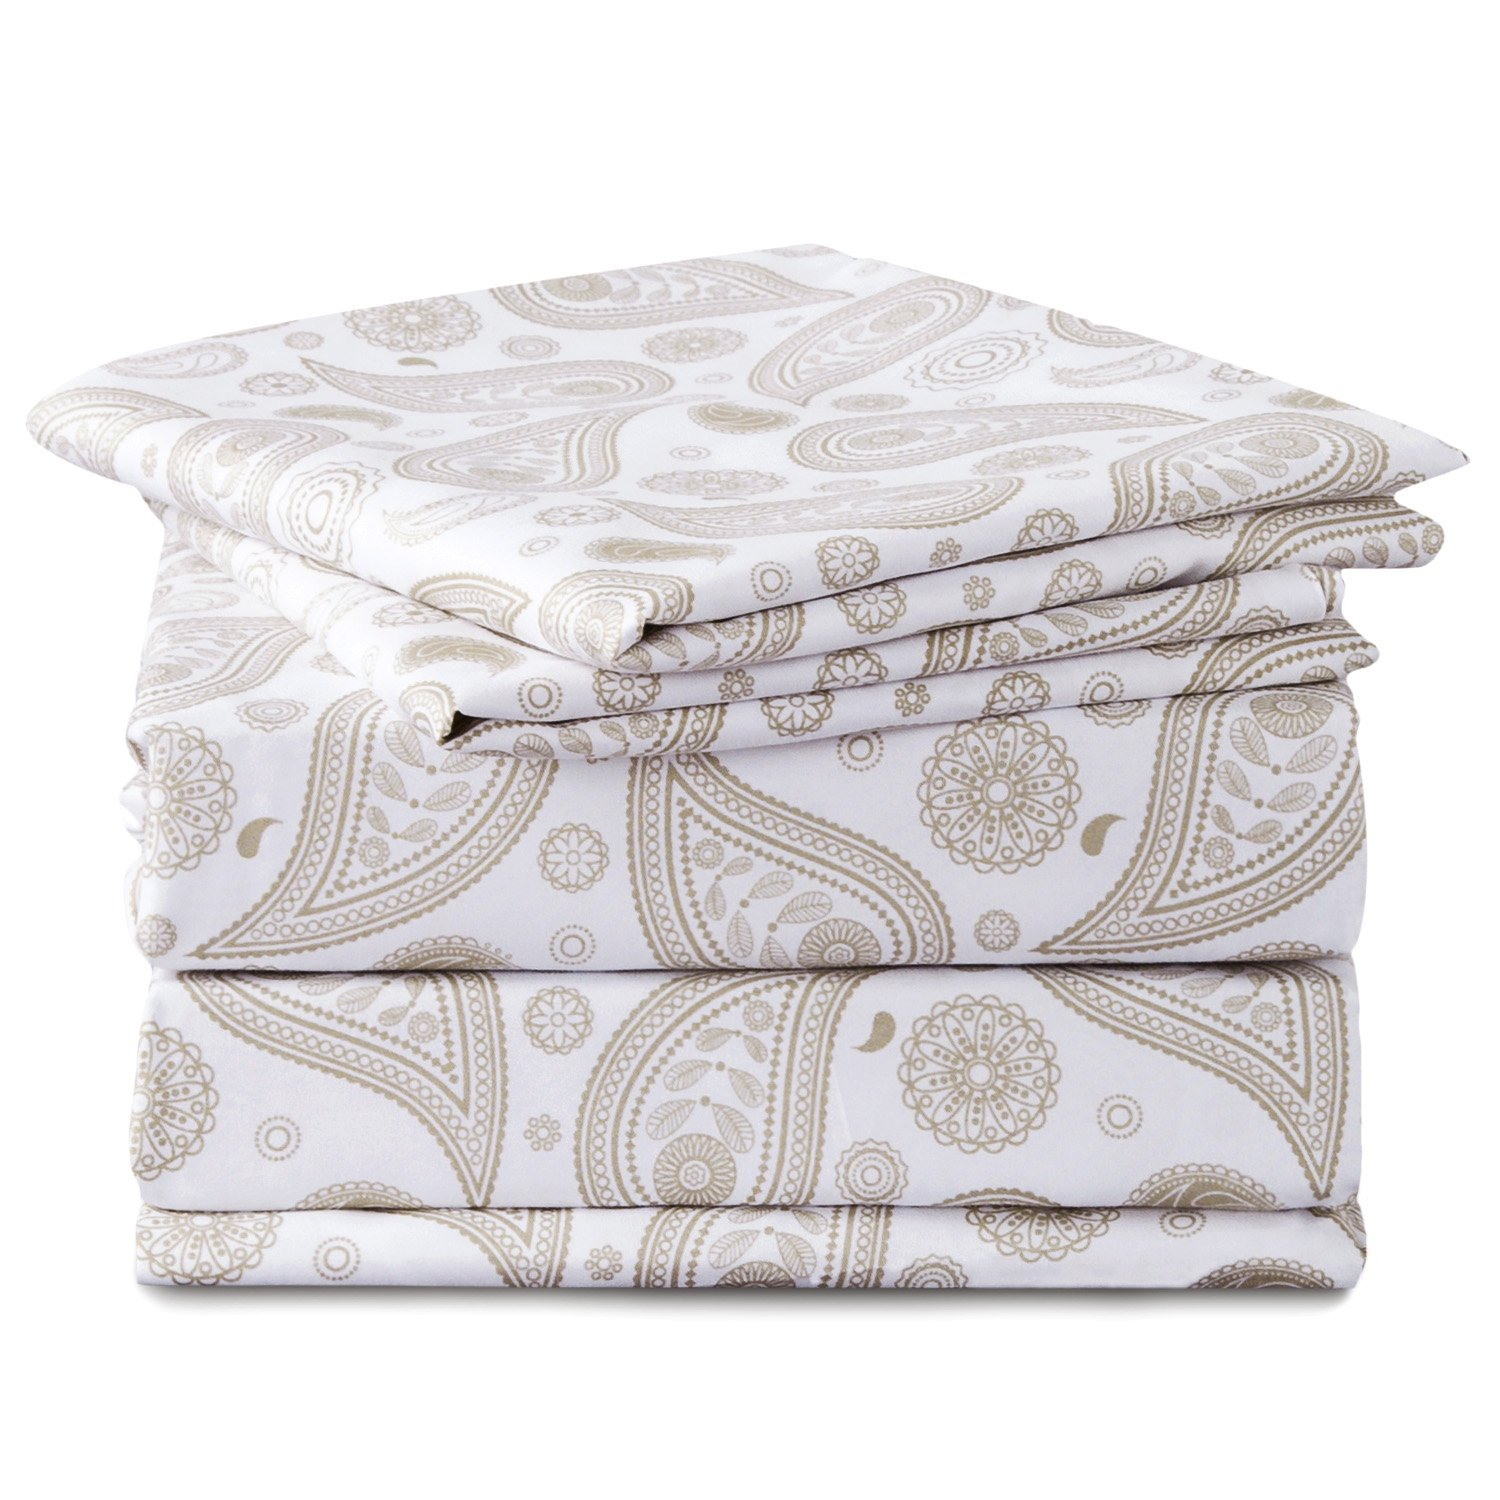 Bedsure Paisley Fitted Sheet Set Double Size 135x190cm White/Beige 3 Pieces Printed Bedding Floral Sheets with 2 Pillowcases Bedshe